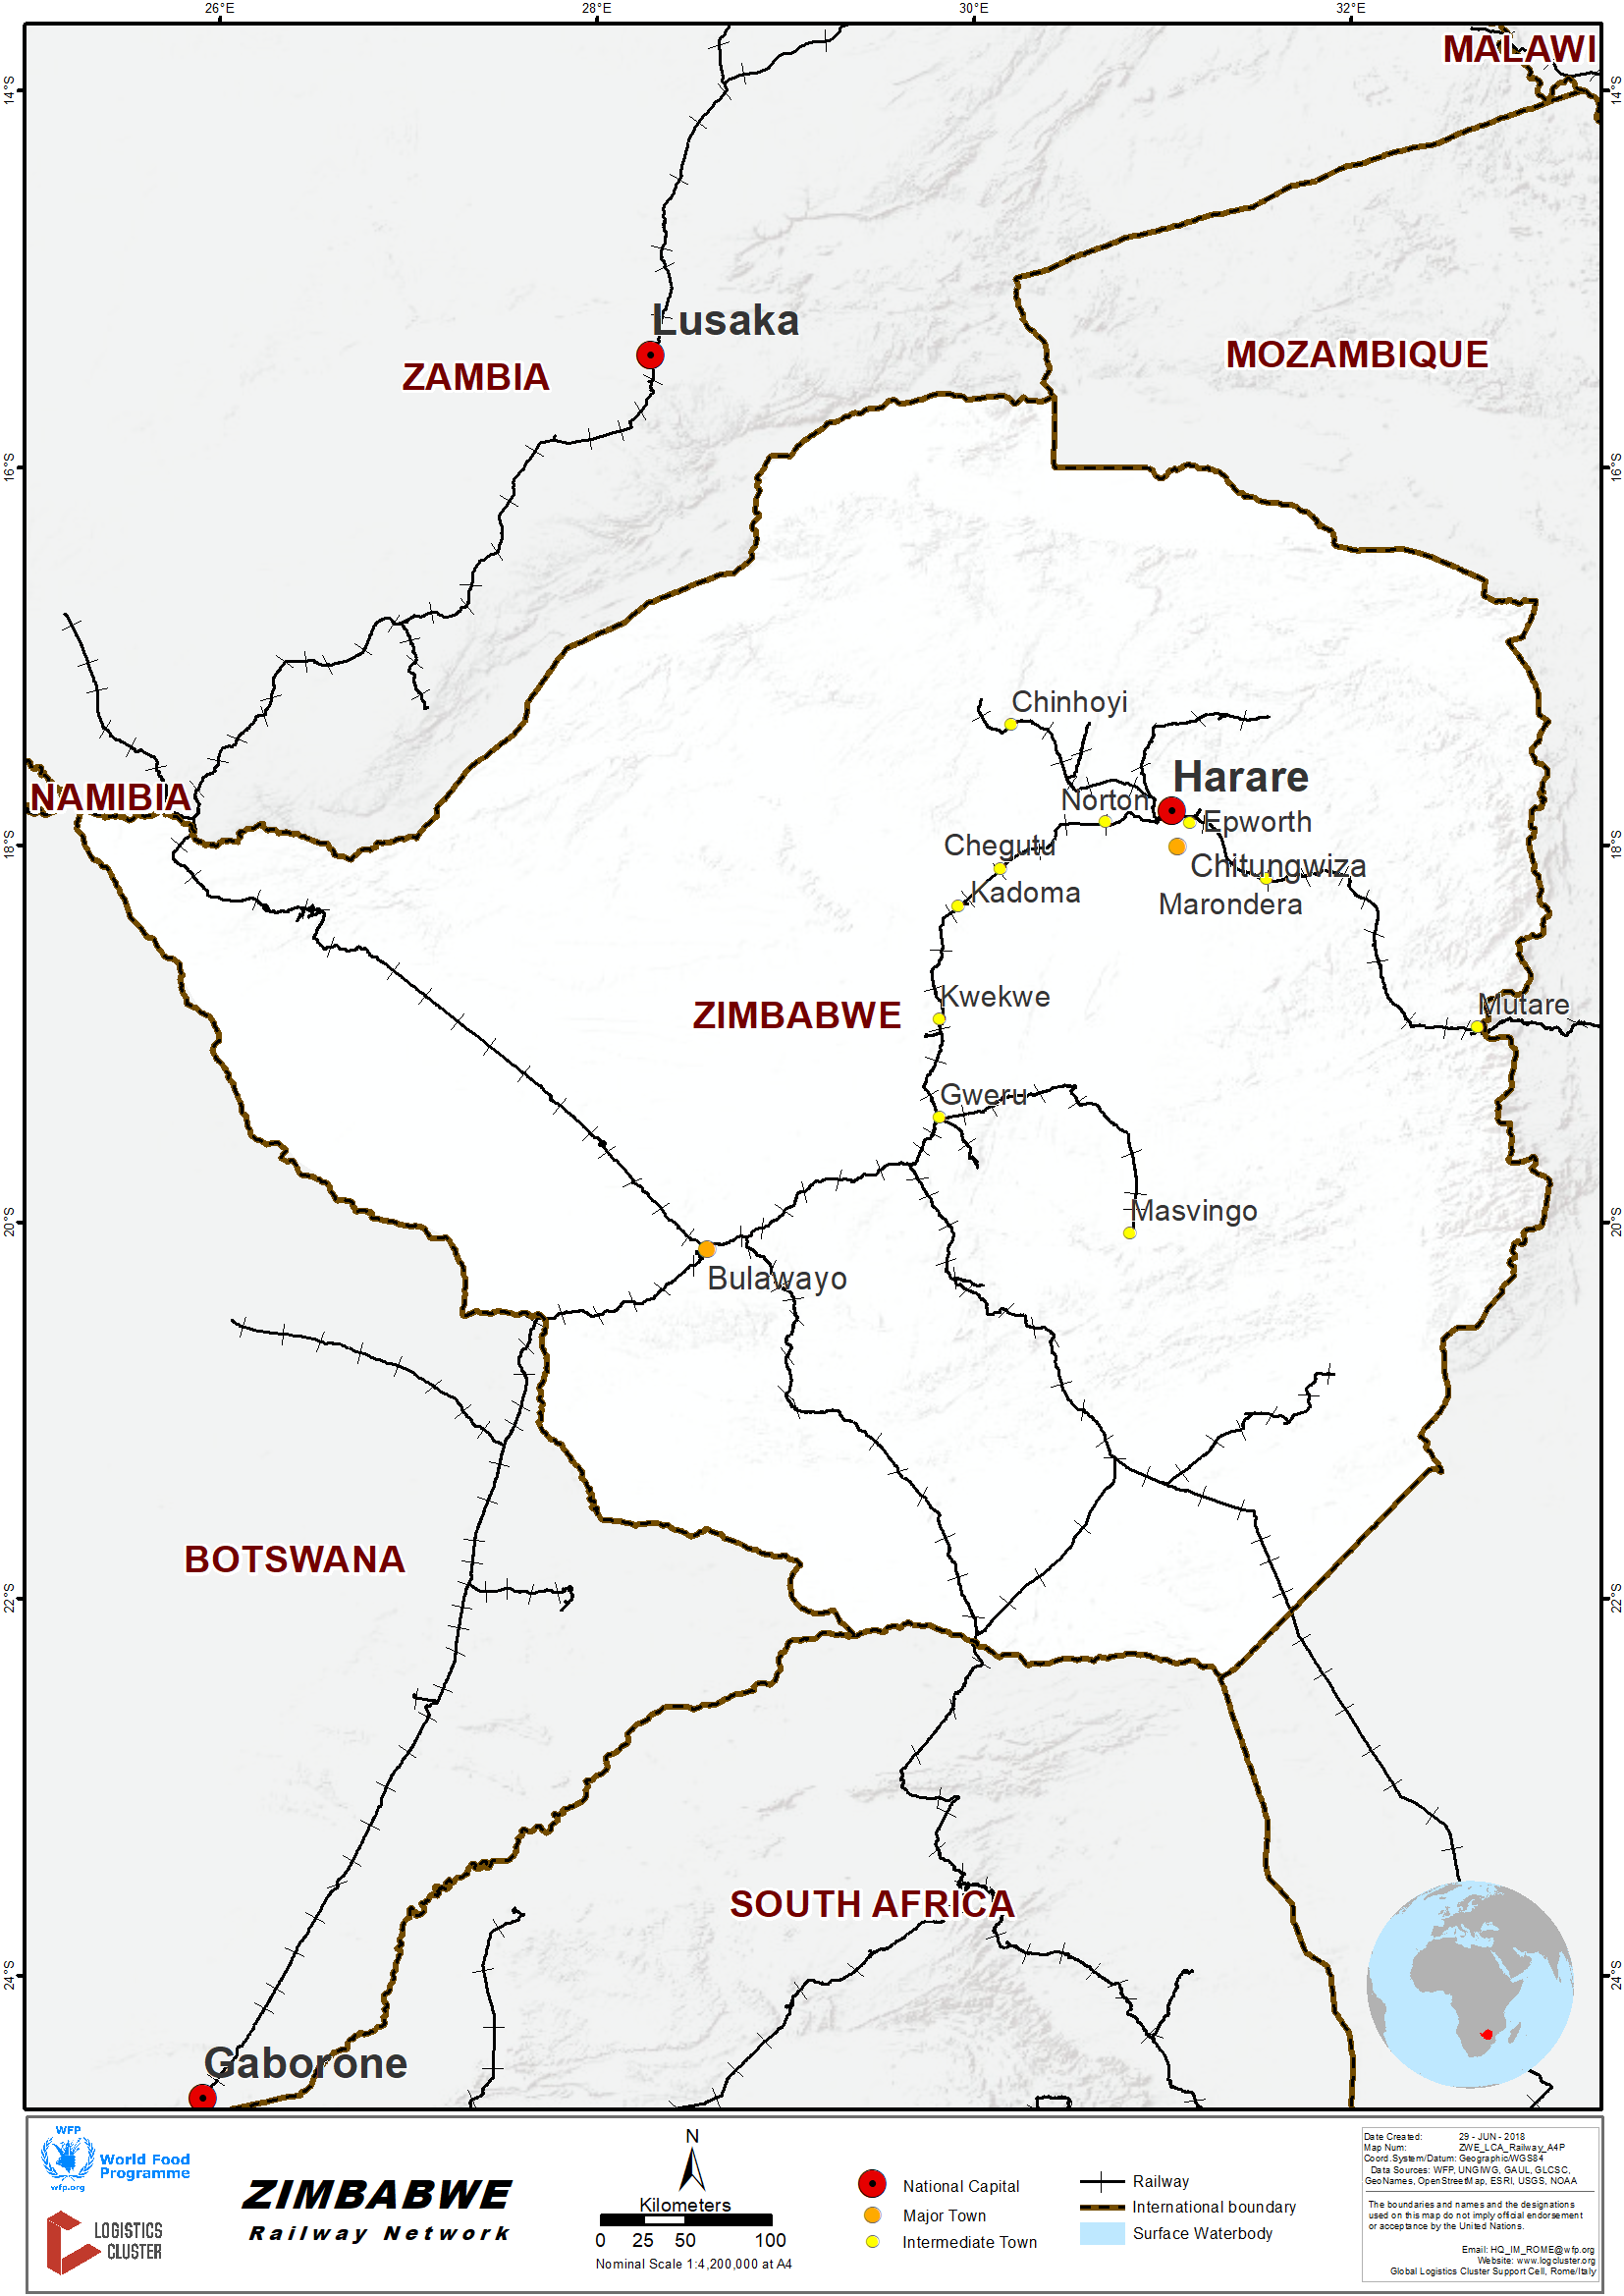 2 4 Zimbabwe Railway Assessment - Logistics Capacity